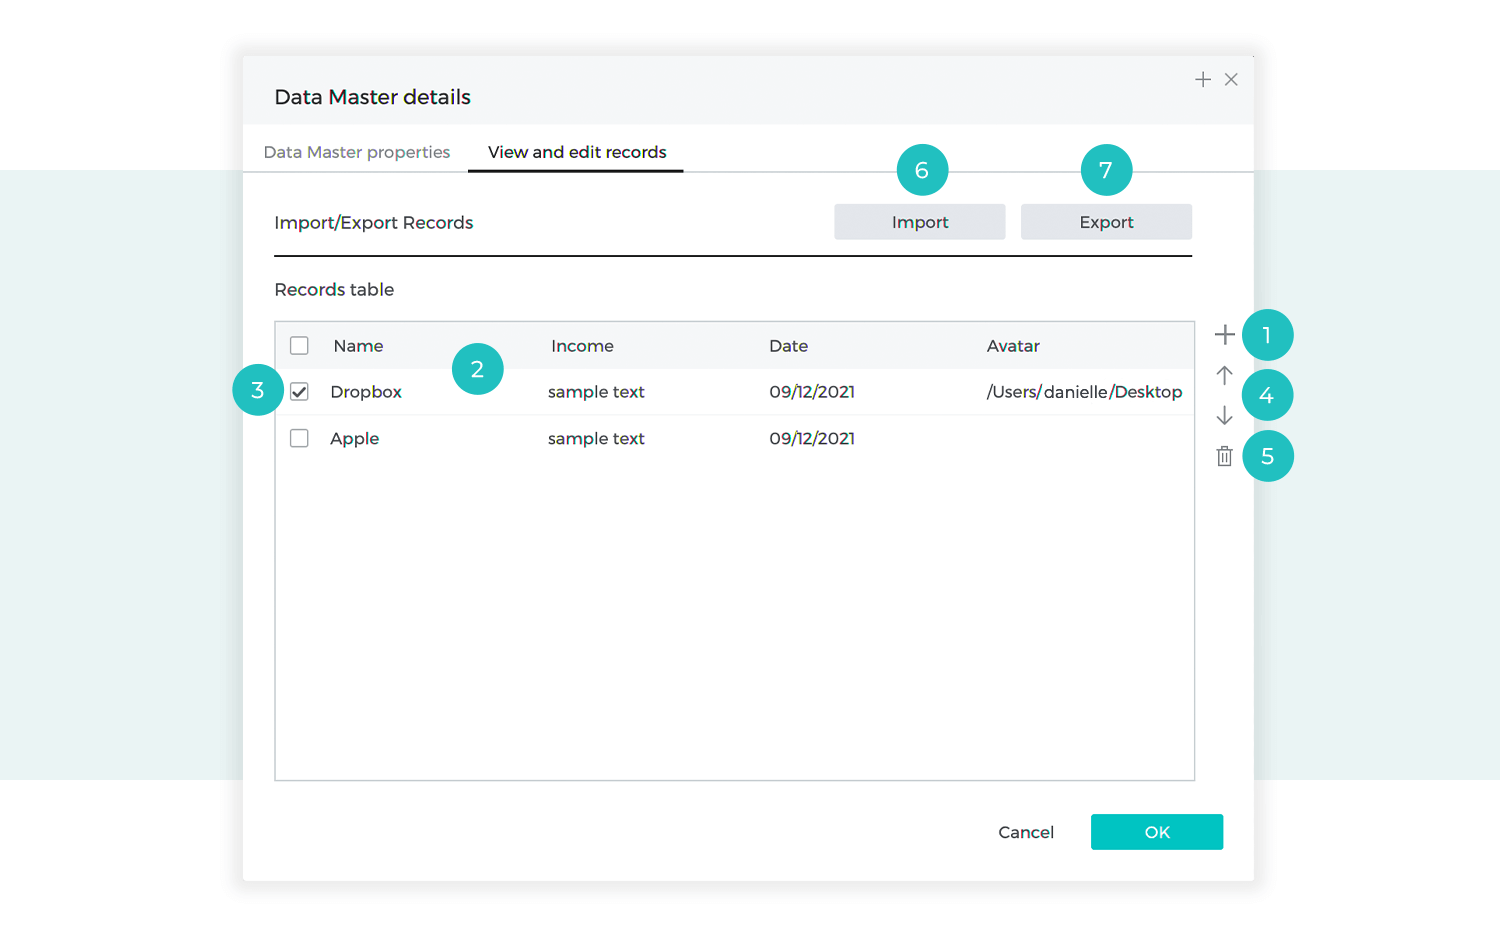 View and edit records of data master defined